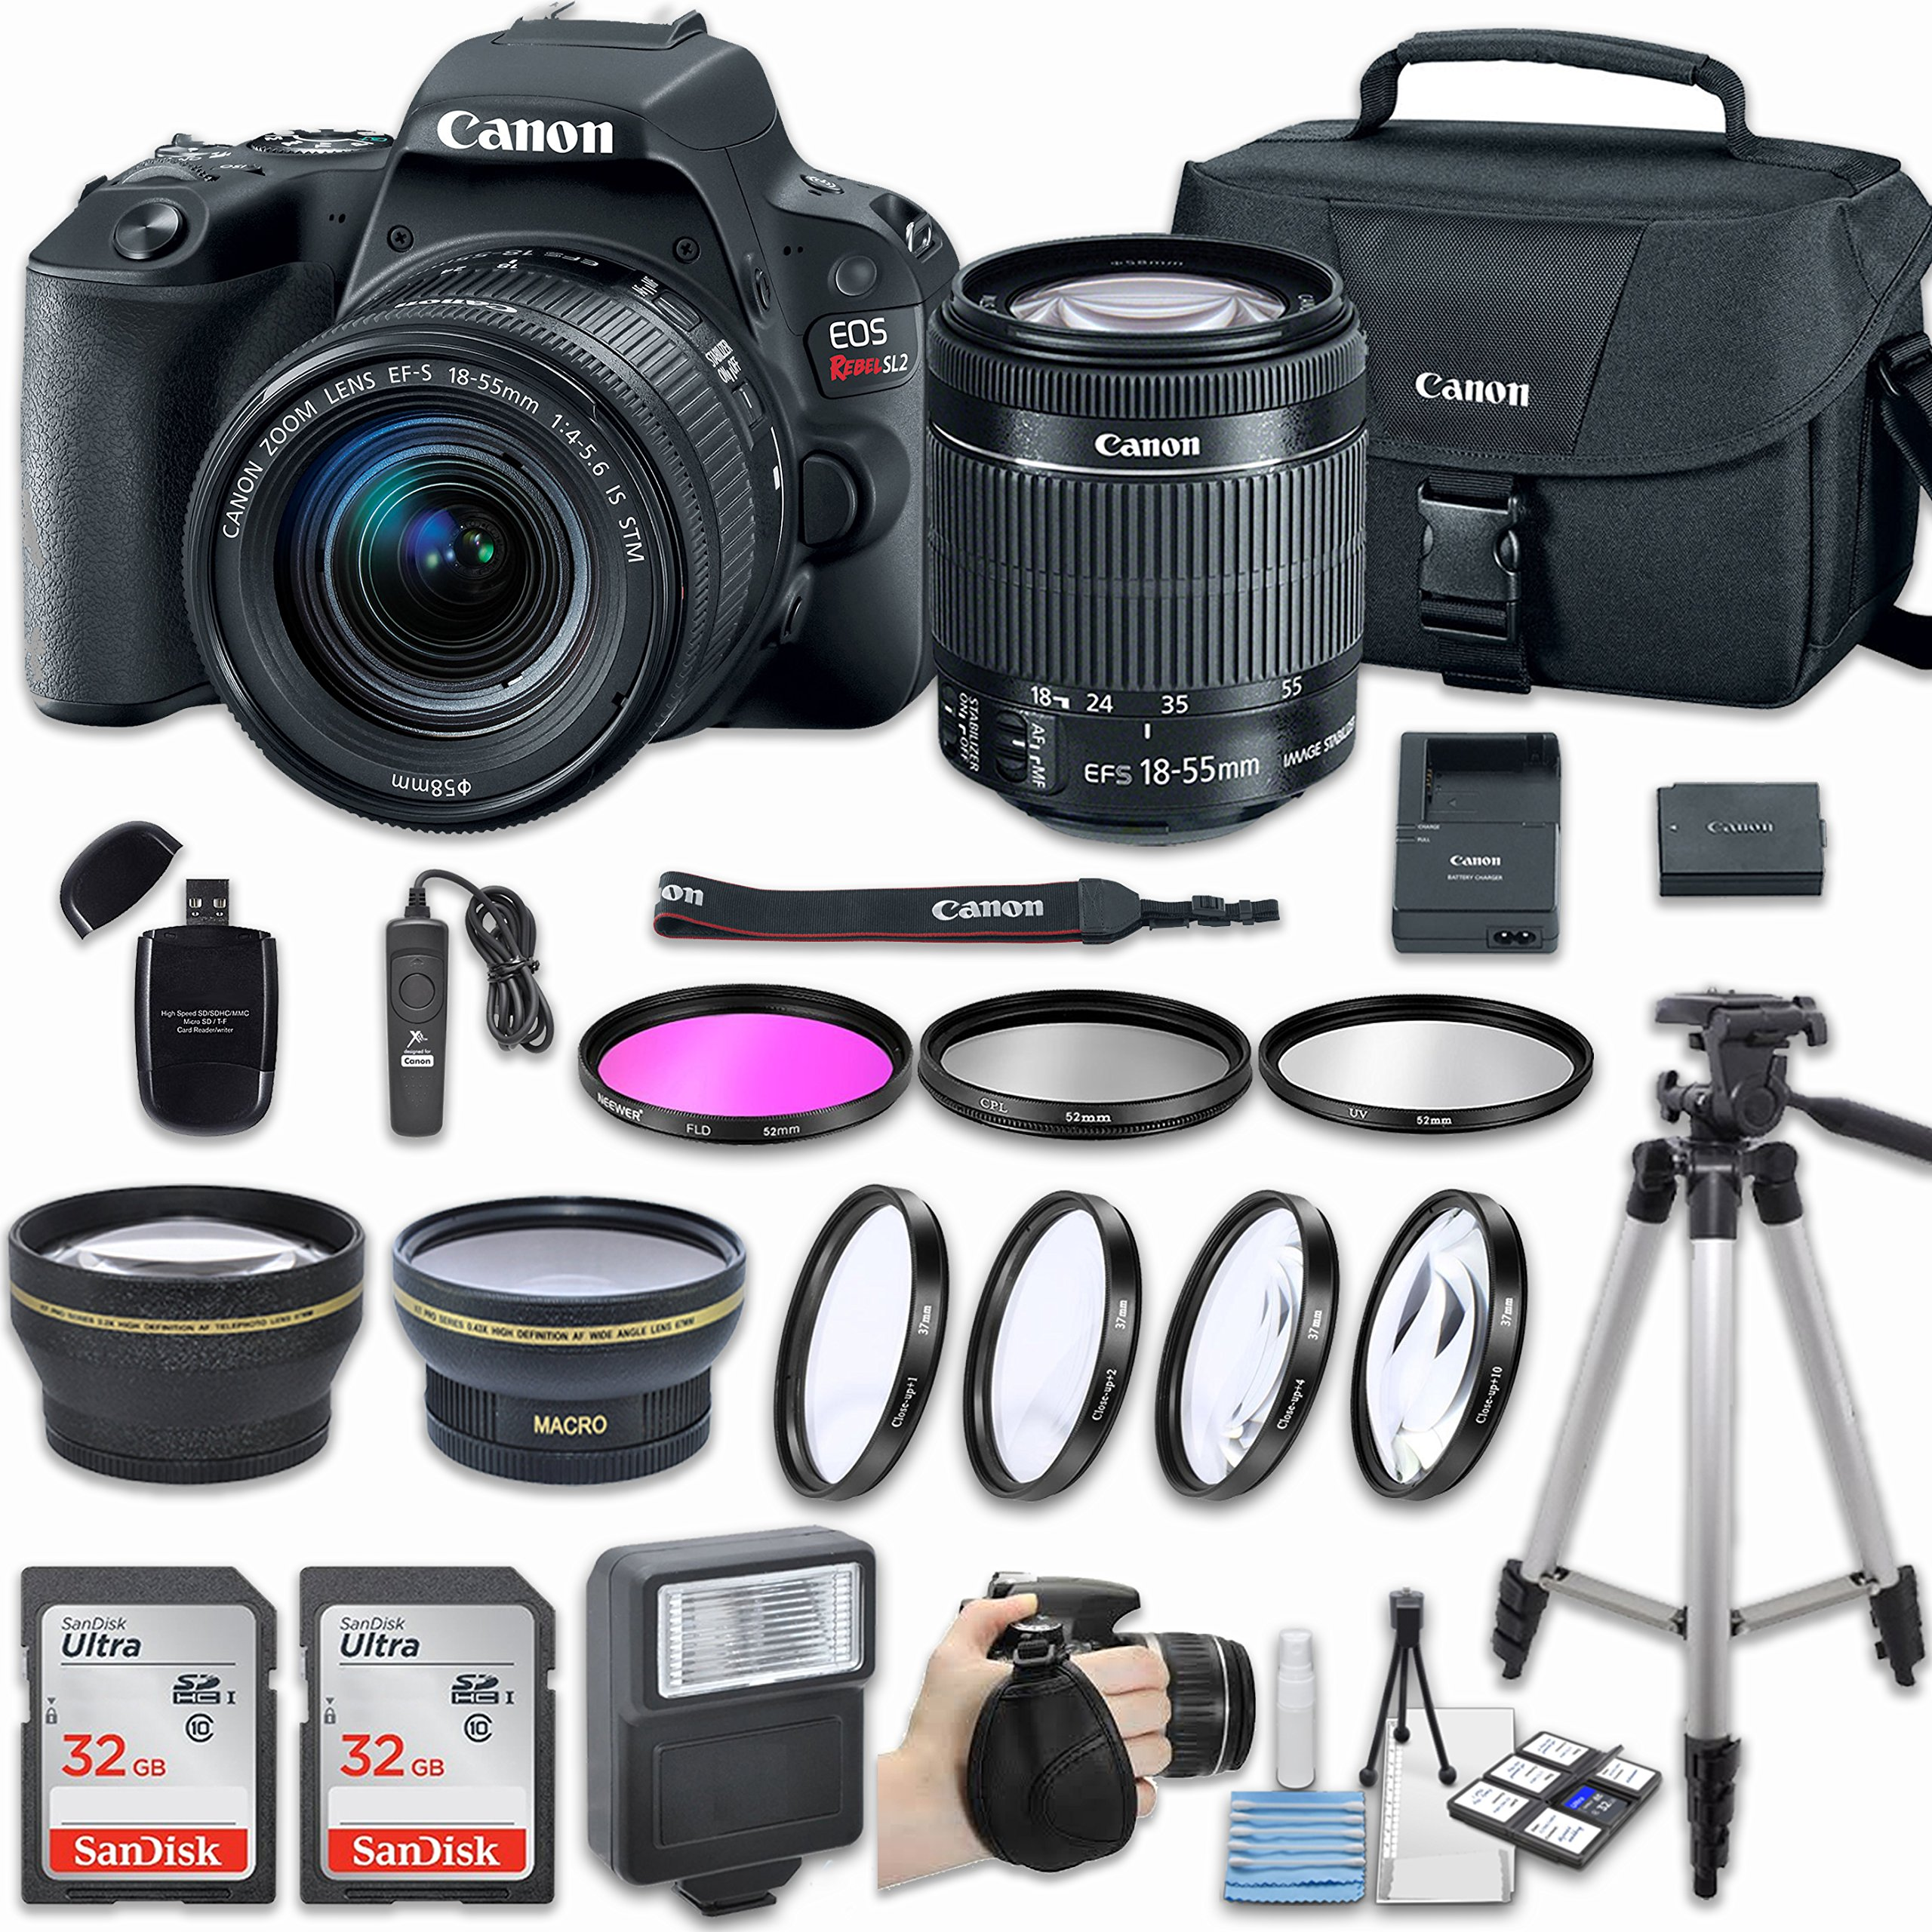 Canon EOS Rebel SL2 DSLR Camera with EF-S 18-55mm f/4-5.6 IS STM Lens & Includes 58mm HD Wide Angle Lens + 2.2x Telephoto + 2Pcs 32GB Sandisk SD Memory + Filter & Macro Kit + More Accessories